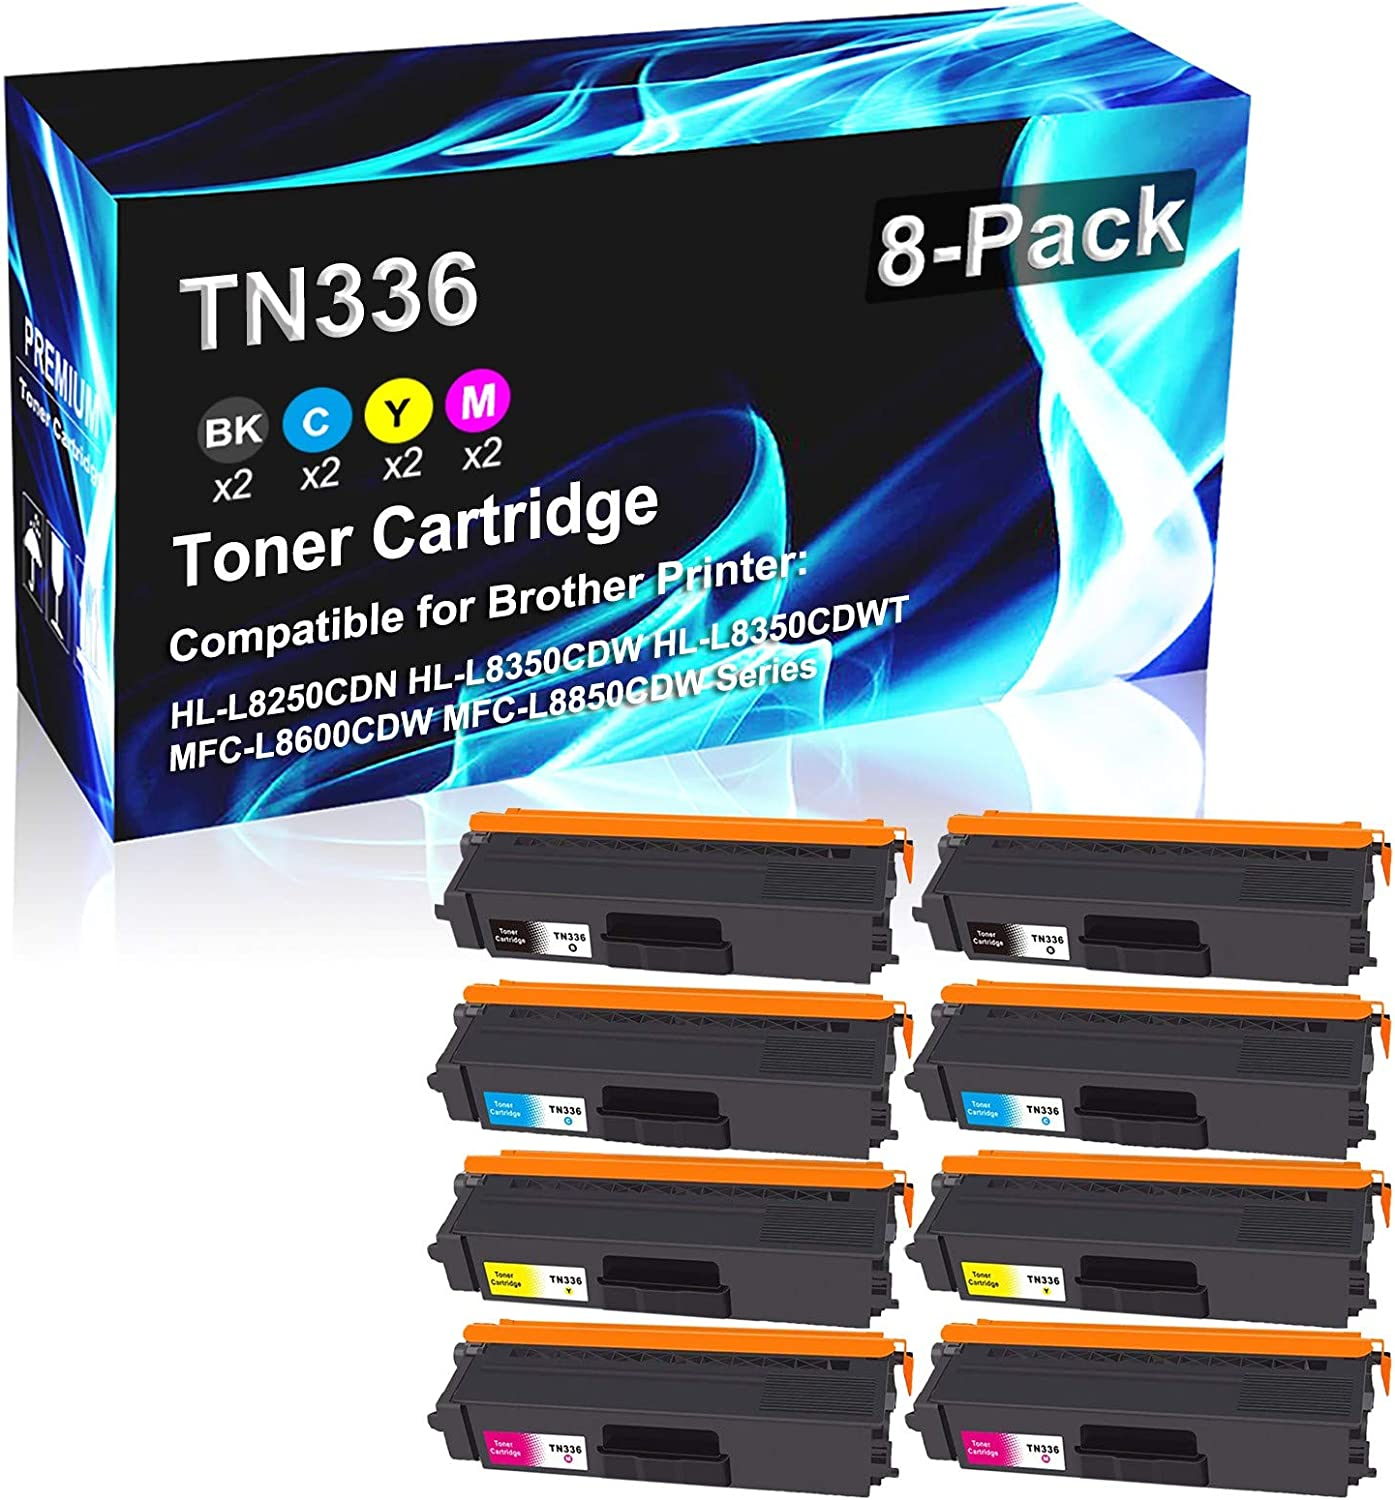 8 Pack (2BK+2C+2Y+2M) Compatible High Yield HL-L8250CDN HL-L8350CDW HL-L8350CDWT MFC-L8600CDW MFC-L8850CDW Printer Toner Replacement for Brother TN-336   TN336 Laser Printer Toner Cartridge